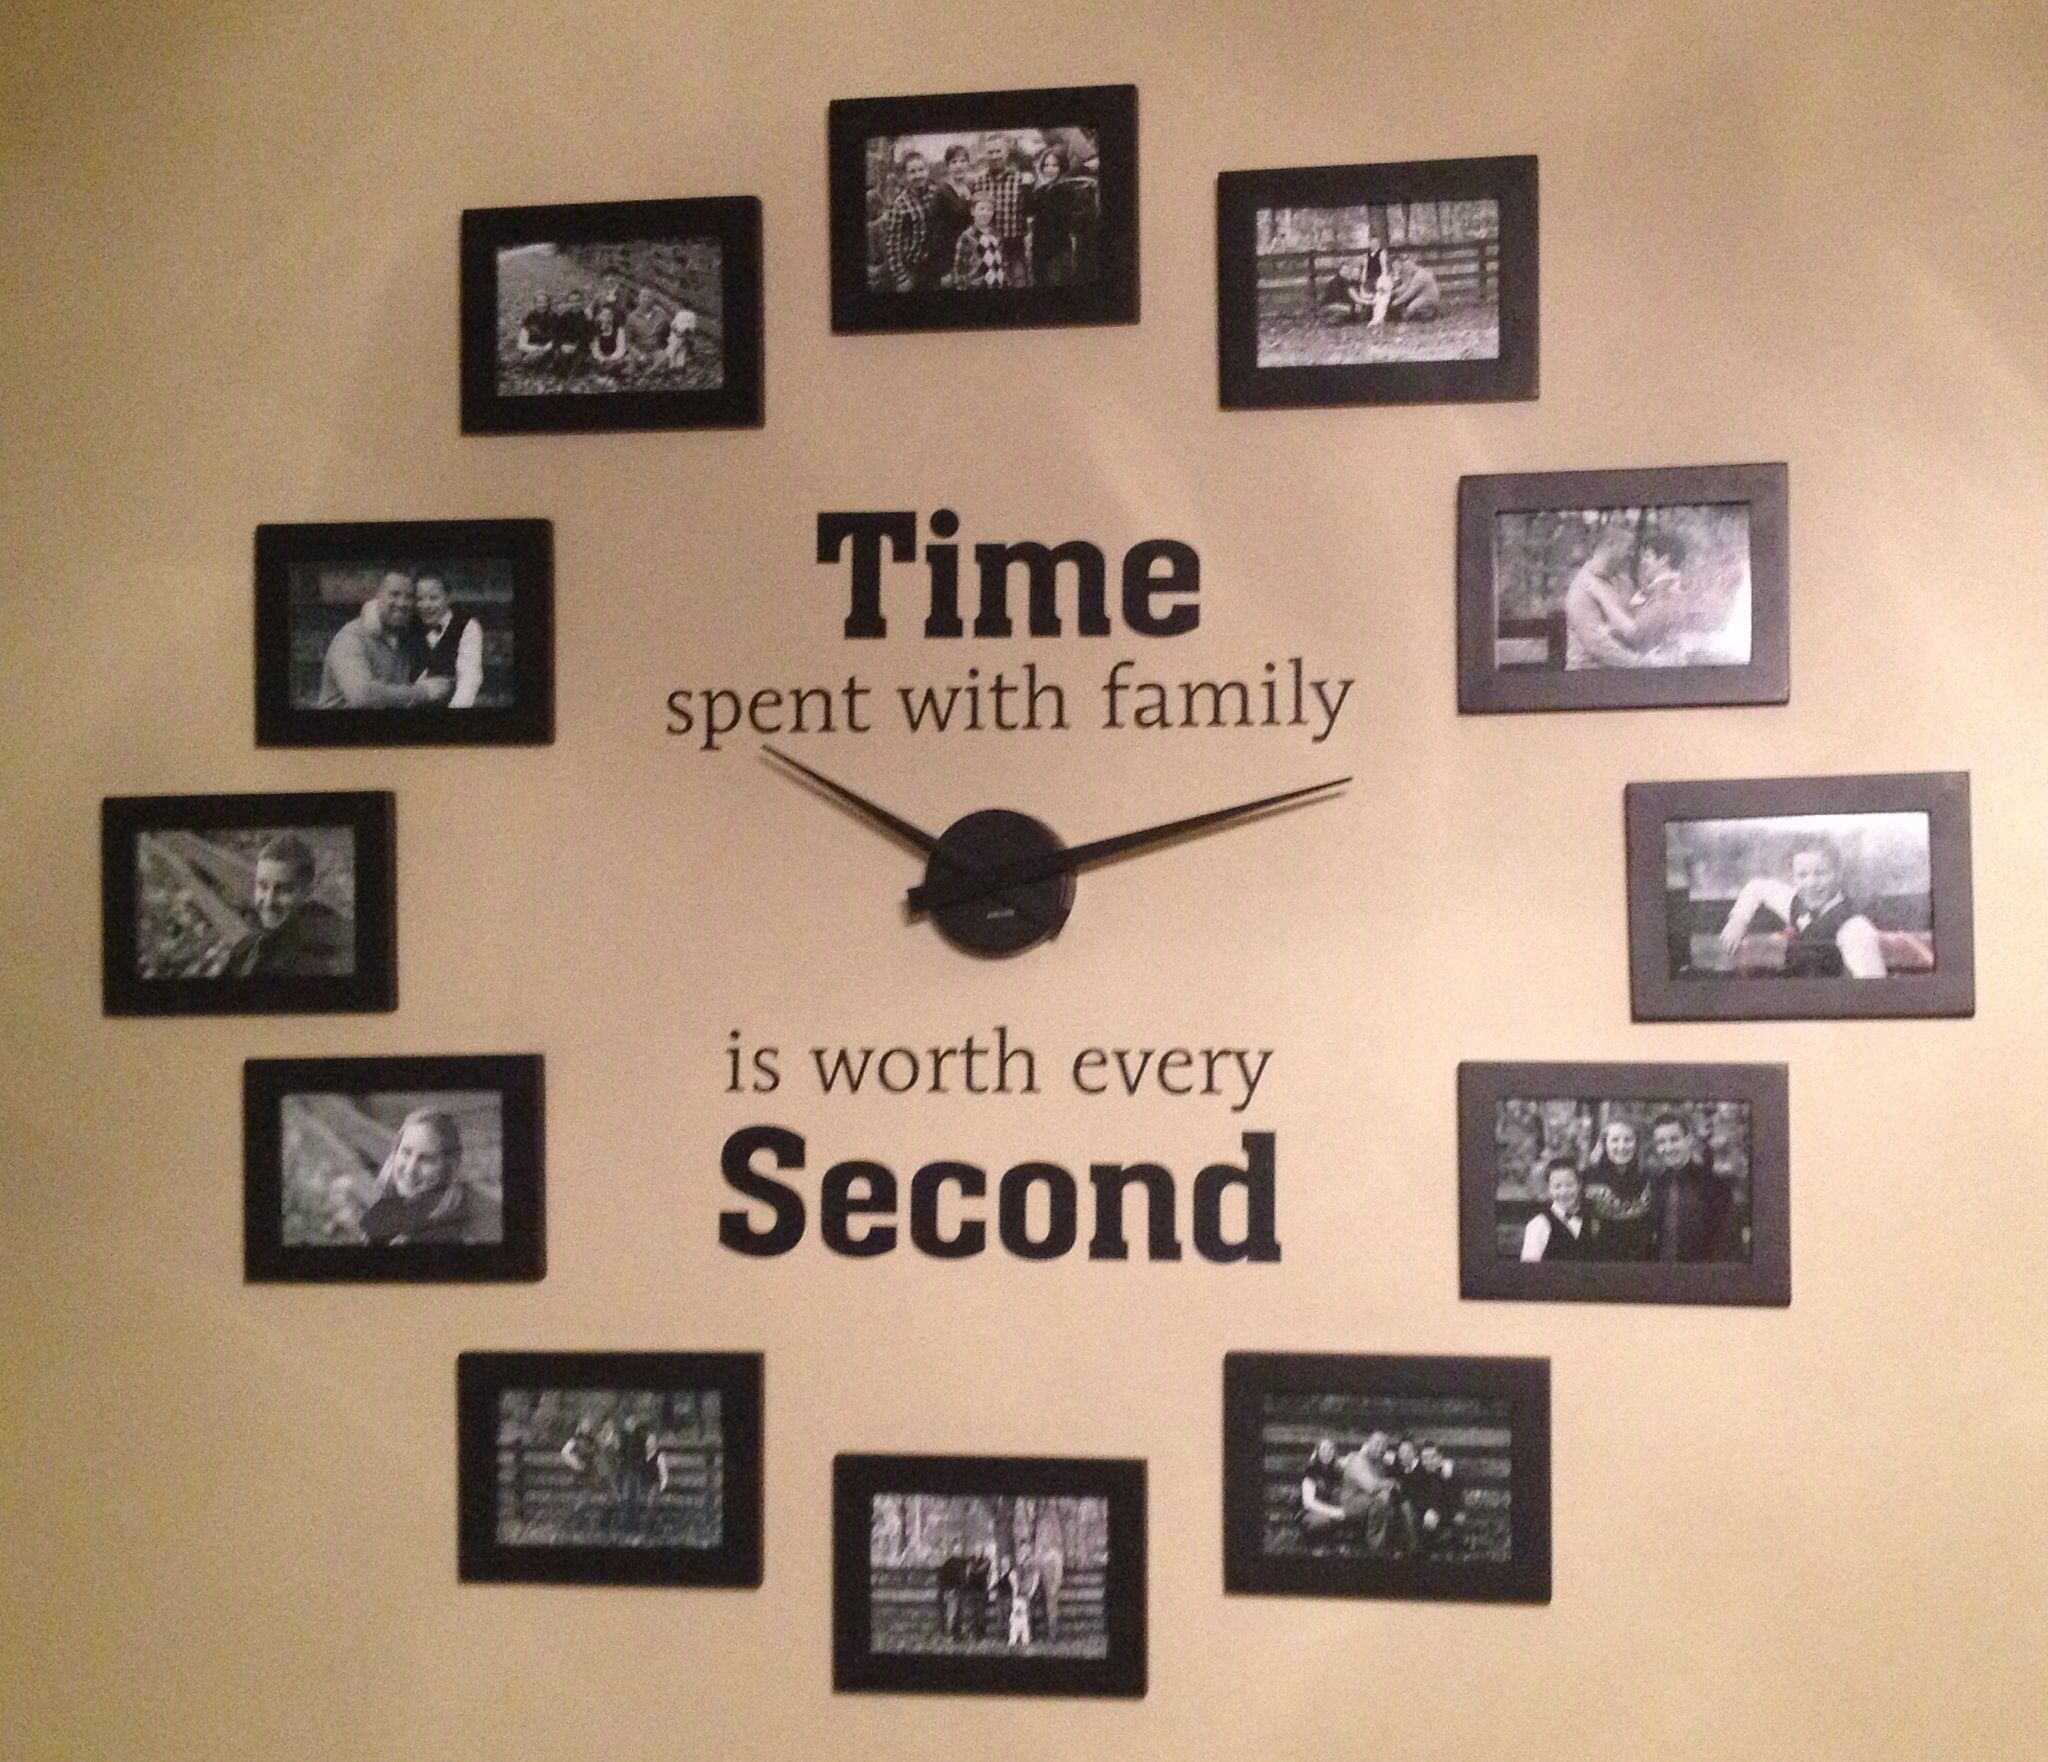 Family Photo Wall Clock Nastennye Chasy Stena Pamyati Dizajn